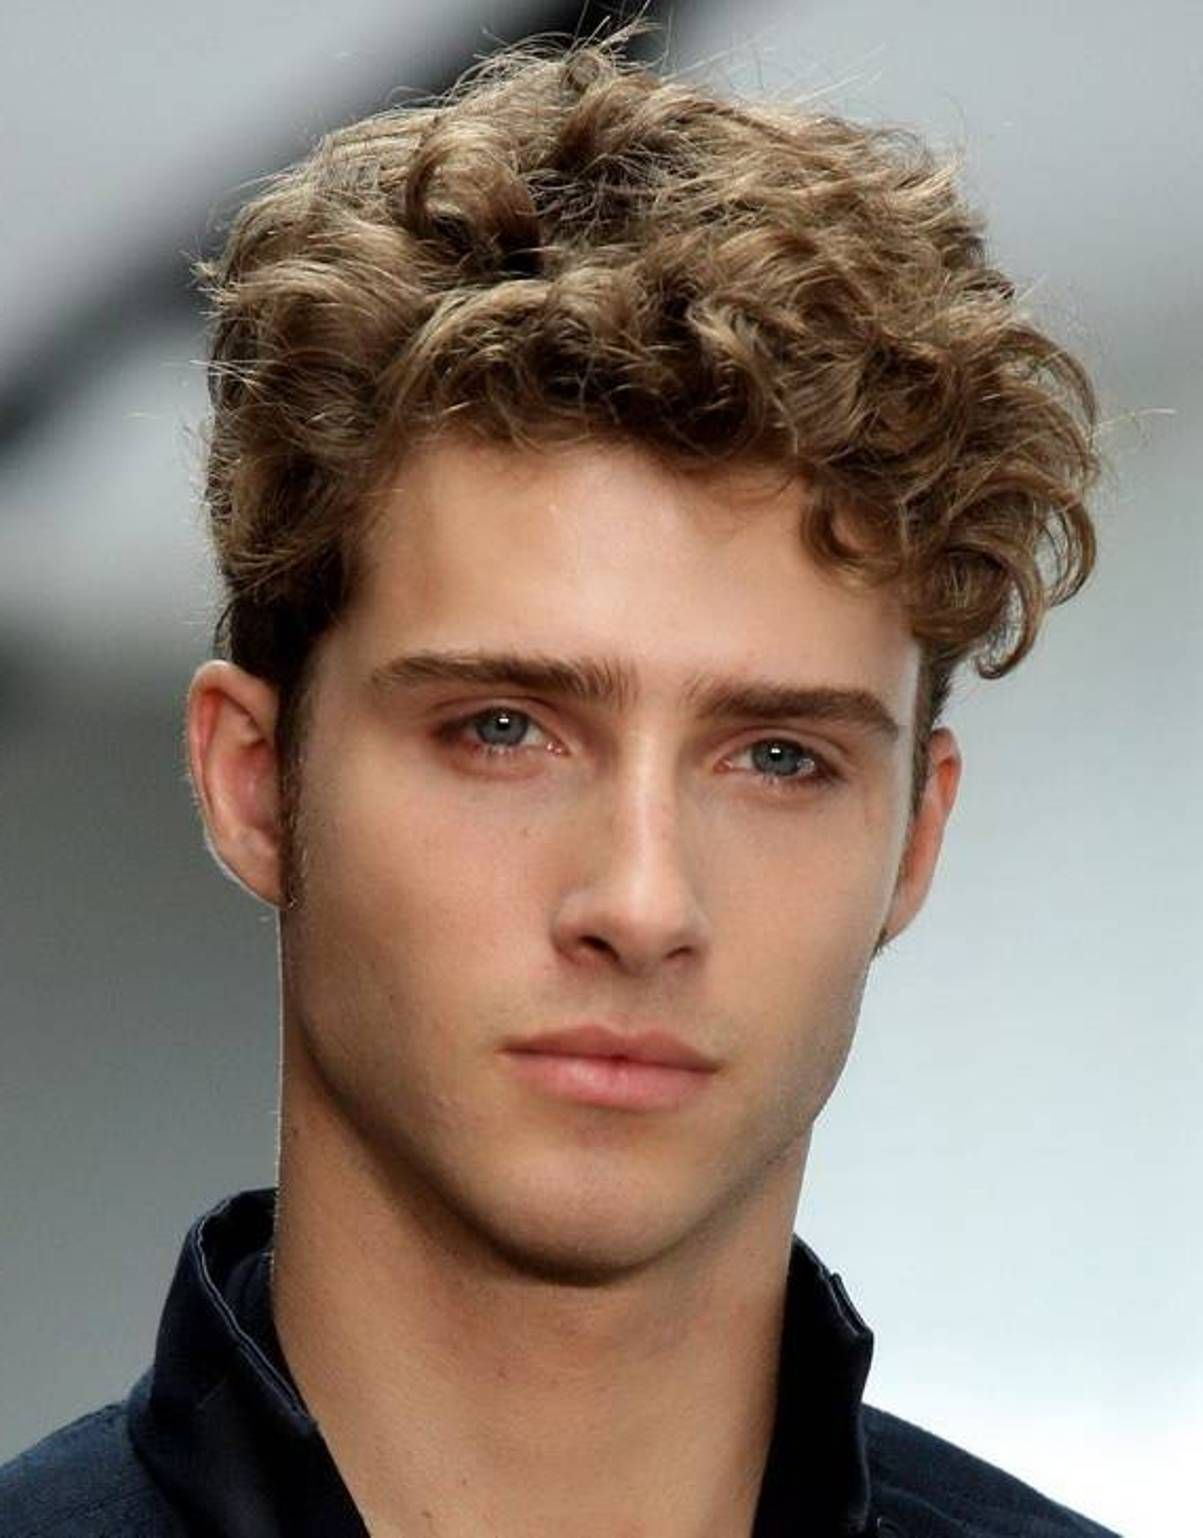 Curly Hairstyles Men Cool Size Matters 60's Hair Trends That Rocked The Nation  Hair Styles